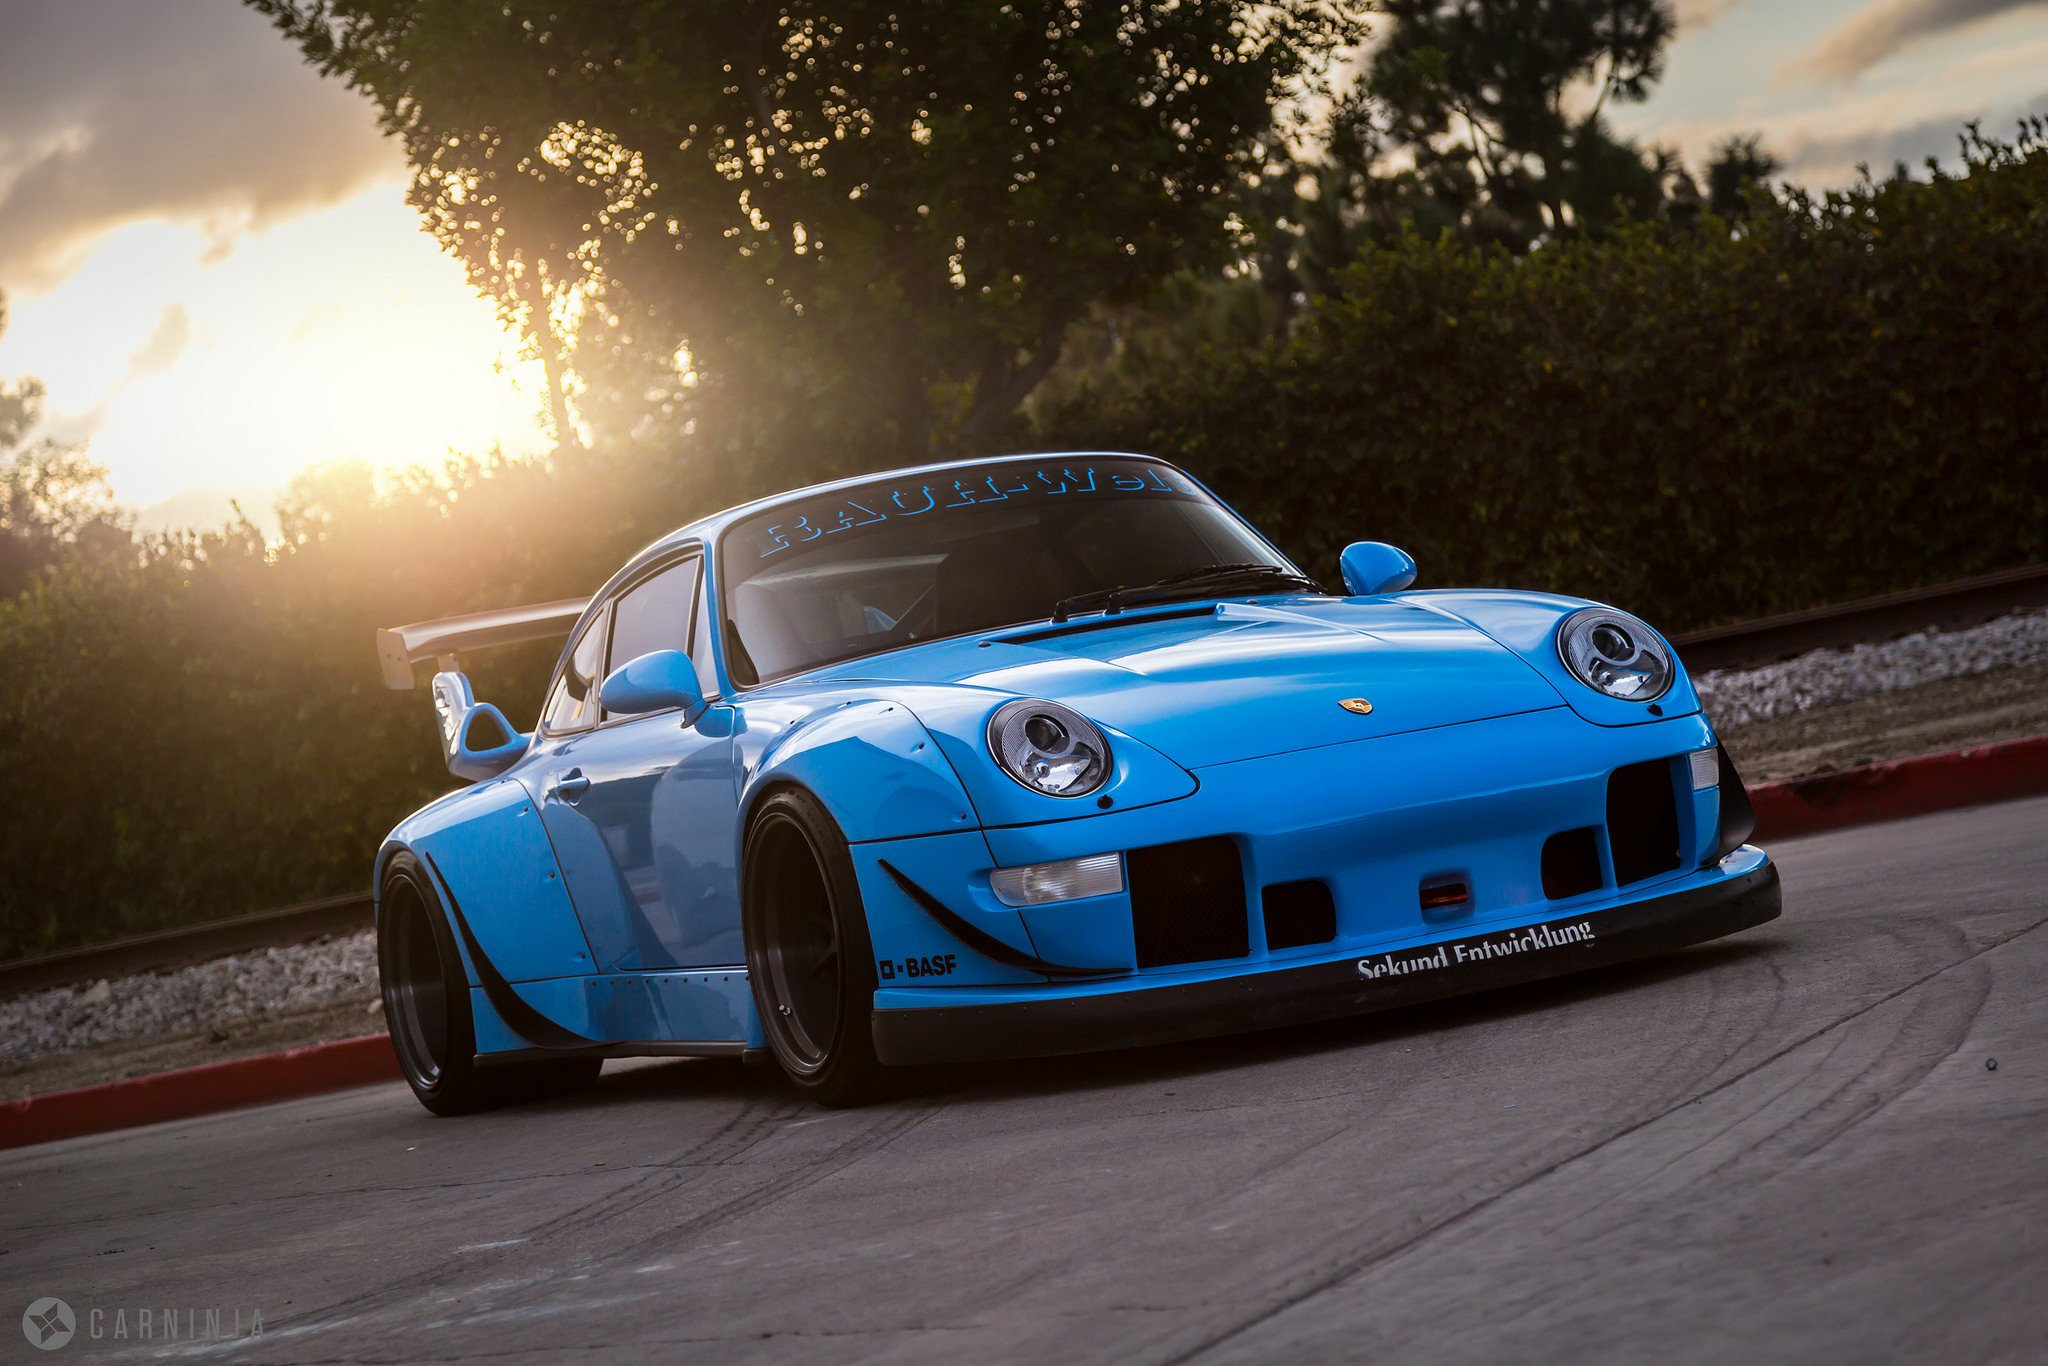 Rauh Welt Begriff Car For Sale